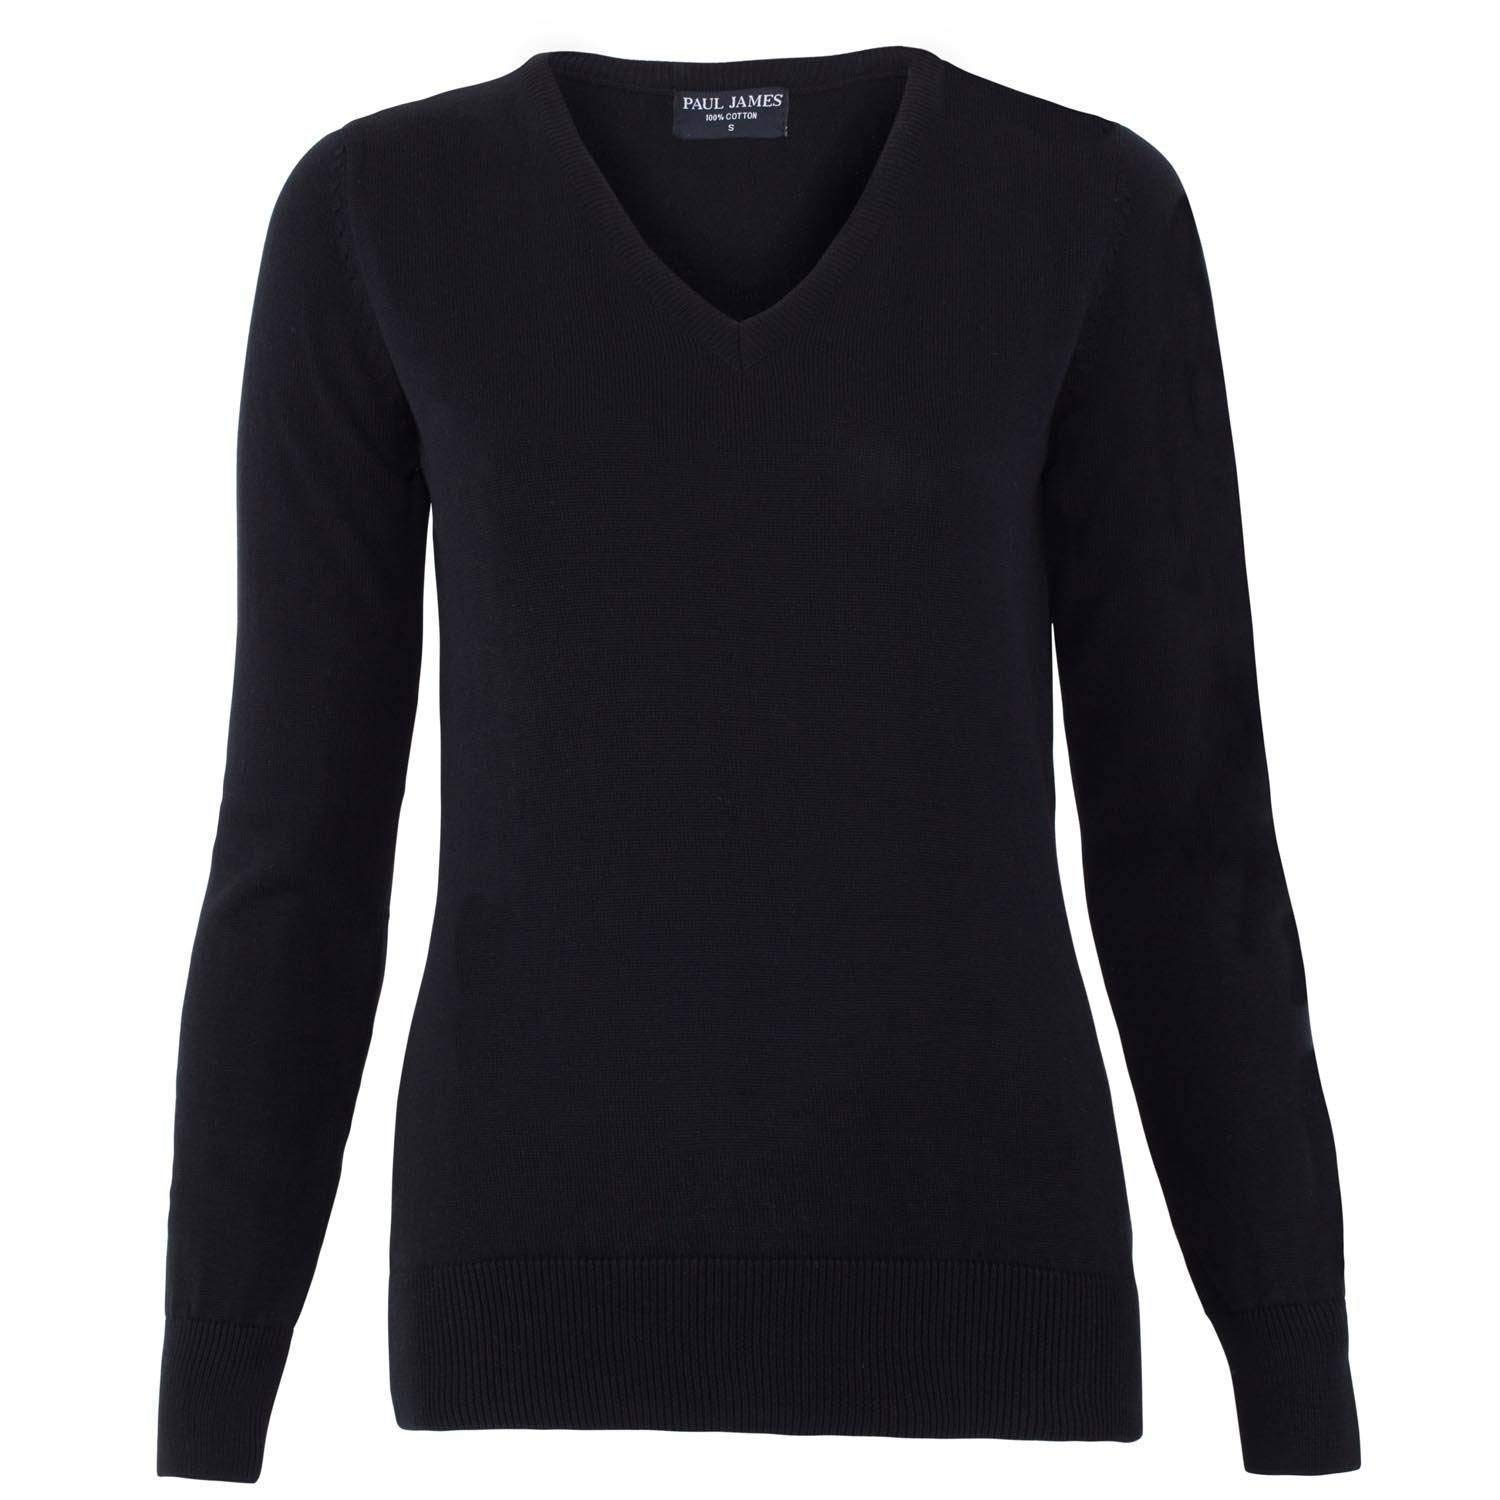 Black Paul James Knitwear Women's Pure Cotton VNeck Jumper